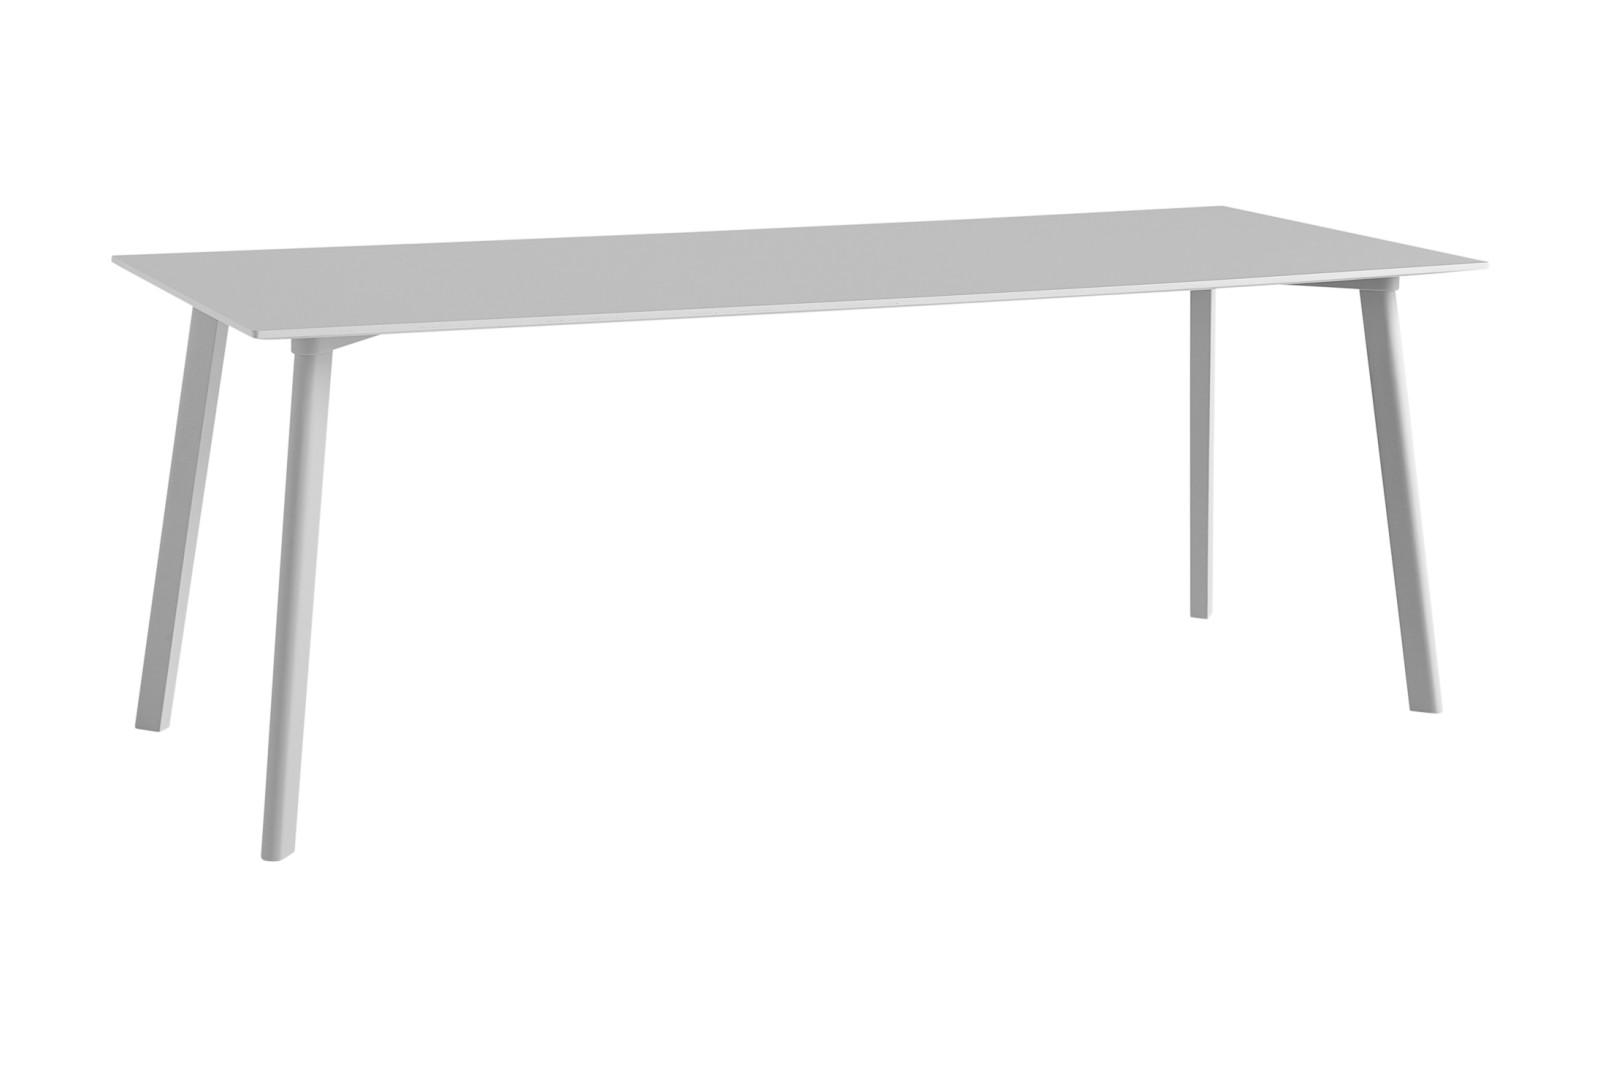 Copenhague Deux (CPH210) Rectangular Dining Table Dusty Grey Laminate Top, Dusty Grey Beech Base, 20